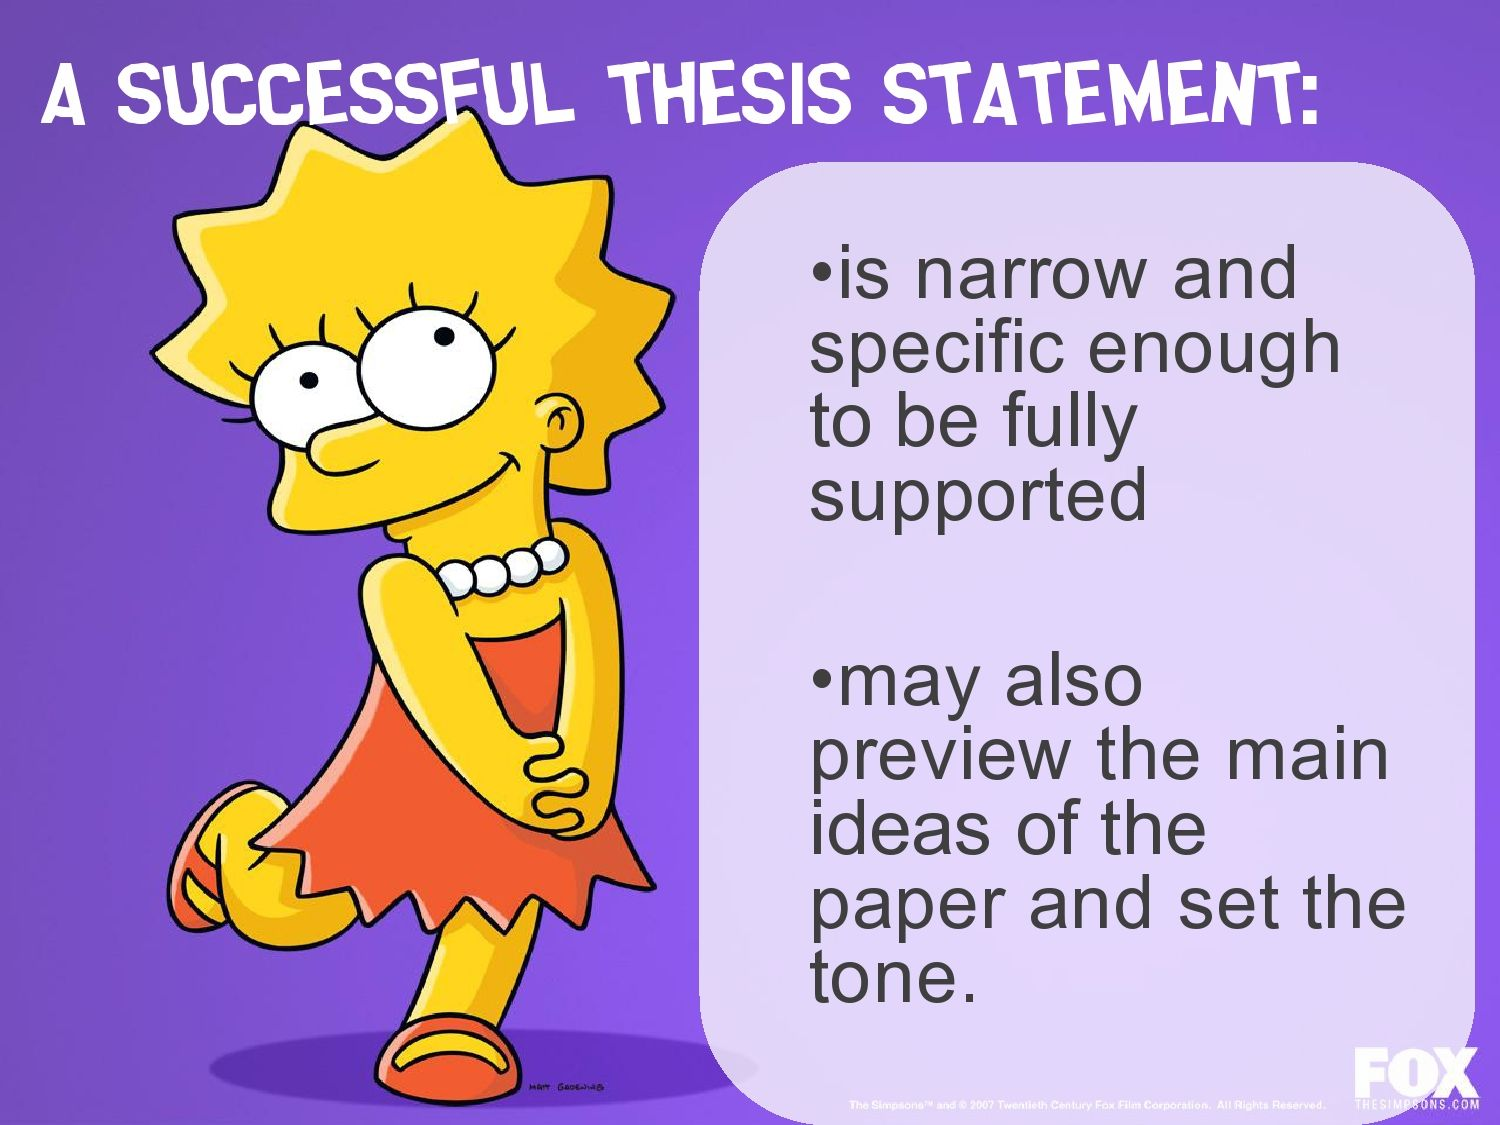 Essay Sample For High School Research Thesis Statement Maker Create A Good Thesis Statement See An  Example If You Are Ready To Write A Persuasive Of Controversial Issue  Essay  Essay Writing Topics For High School Students also Essay Proposal Example Lisa Simpson On Thesis Statements  Topic Sentences  Writing  Buy Essay Papers